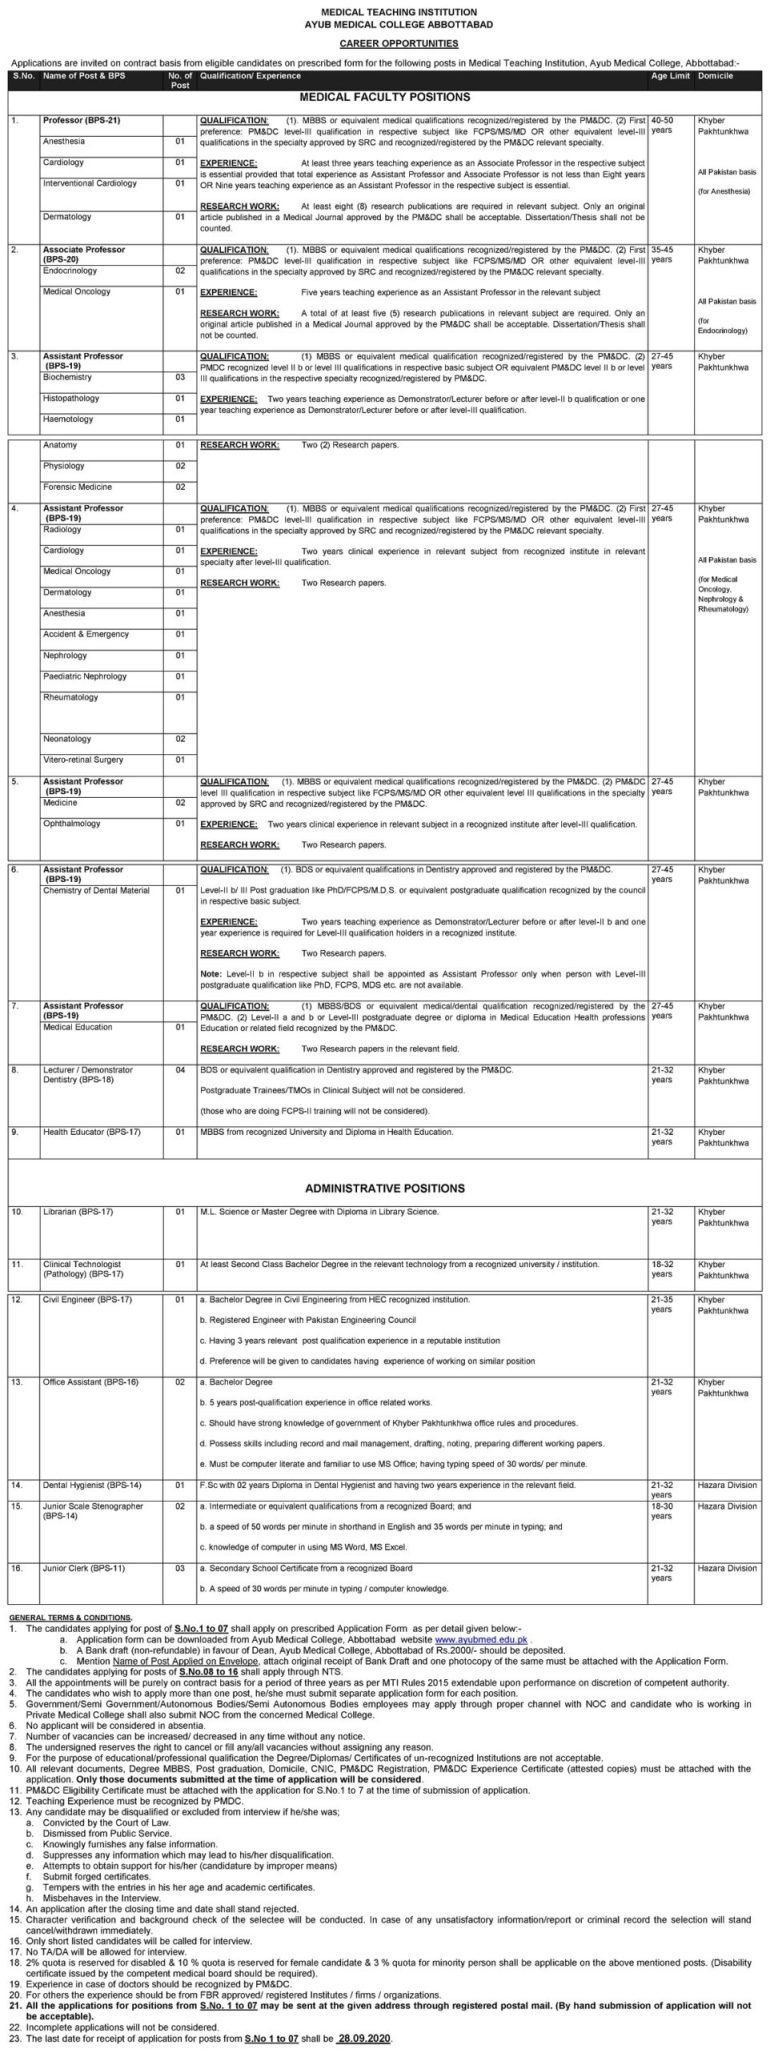 Ayub Medical College Jobs